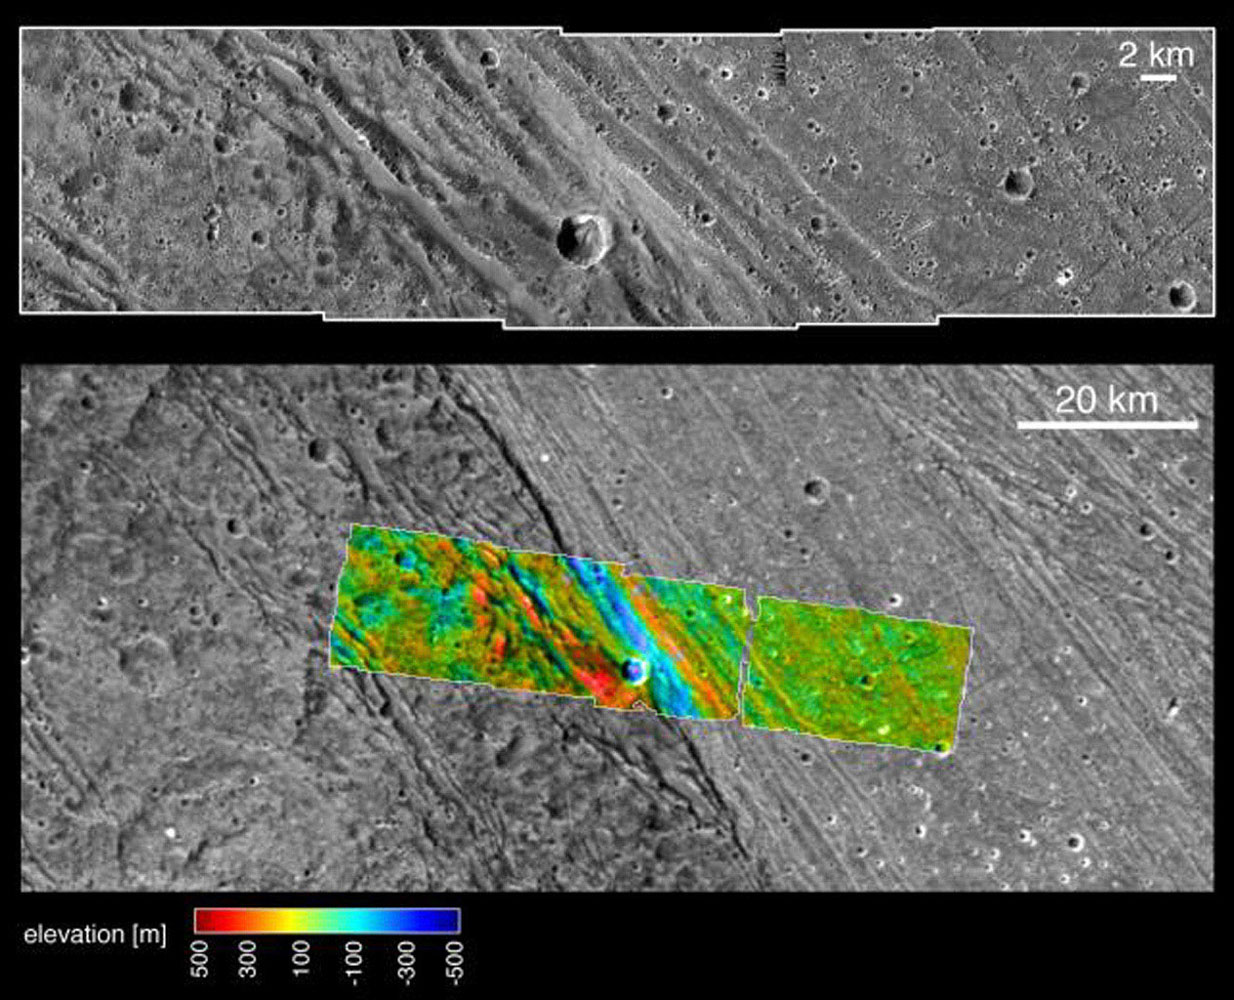 These images, taken by NASA's Galileo spacecraft on its May 20, 2000, flyby of Jupiter's moon Ganymede, illustrate the boundary and different elevations between the dark, ancient terrain of Nicholson Regio and bright, younger terrain of Harpagia Sulcus.